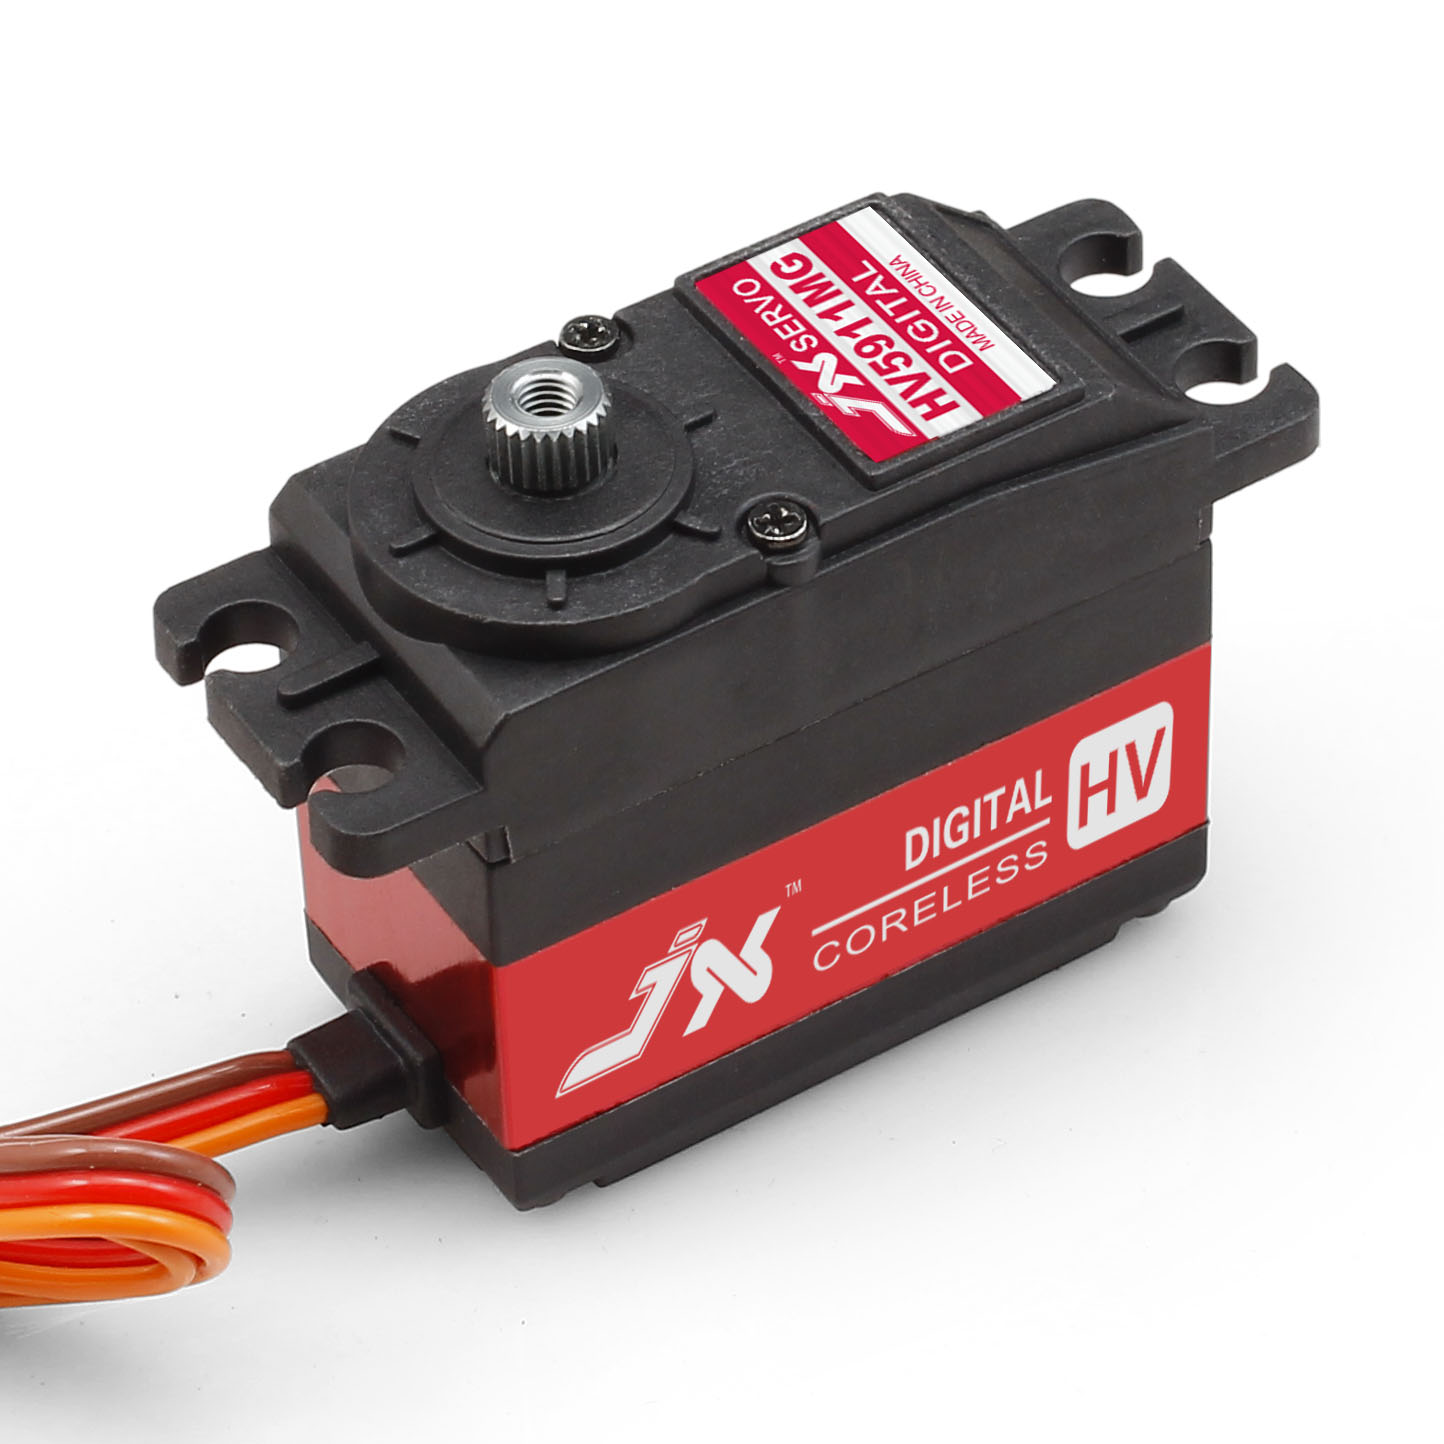 Superior Hobby Jx PDI-HV5911MG 11KG High Precision Metal Gear High Voltage Digital Coreless Standard Servo superior hobby jx cls6310hv 10kg aluminium shell metal gear high voltage coreless digital servo